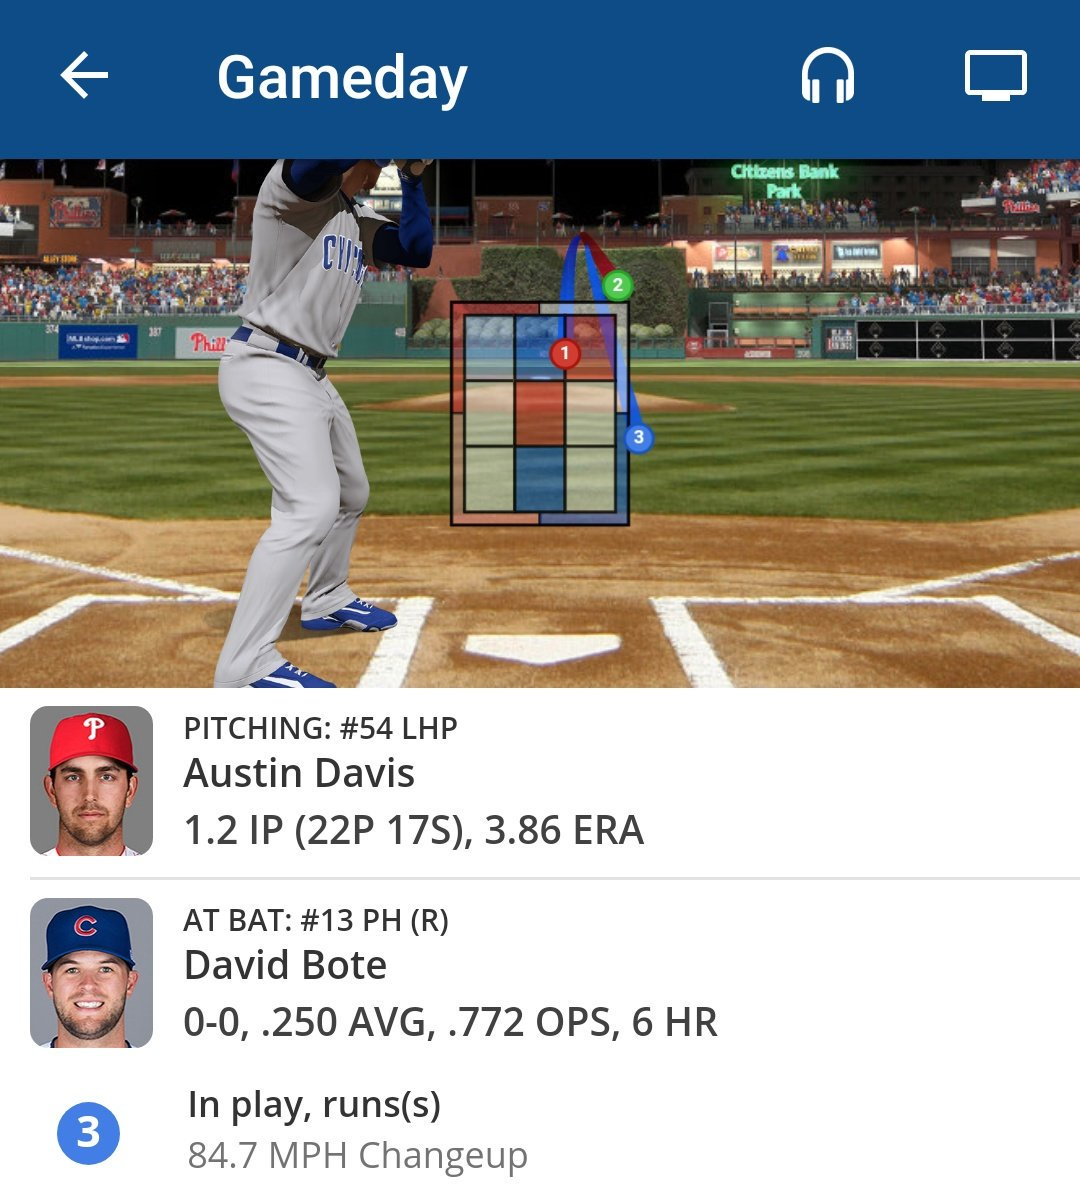 MLB Gameday in play, run(s)